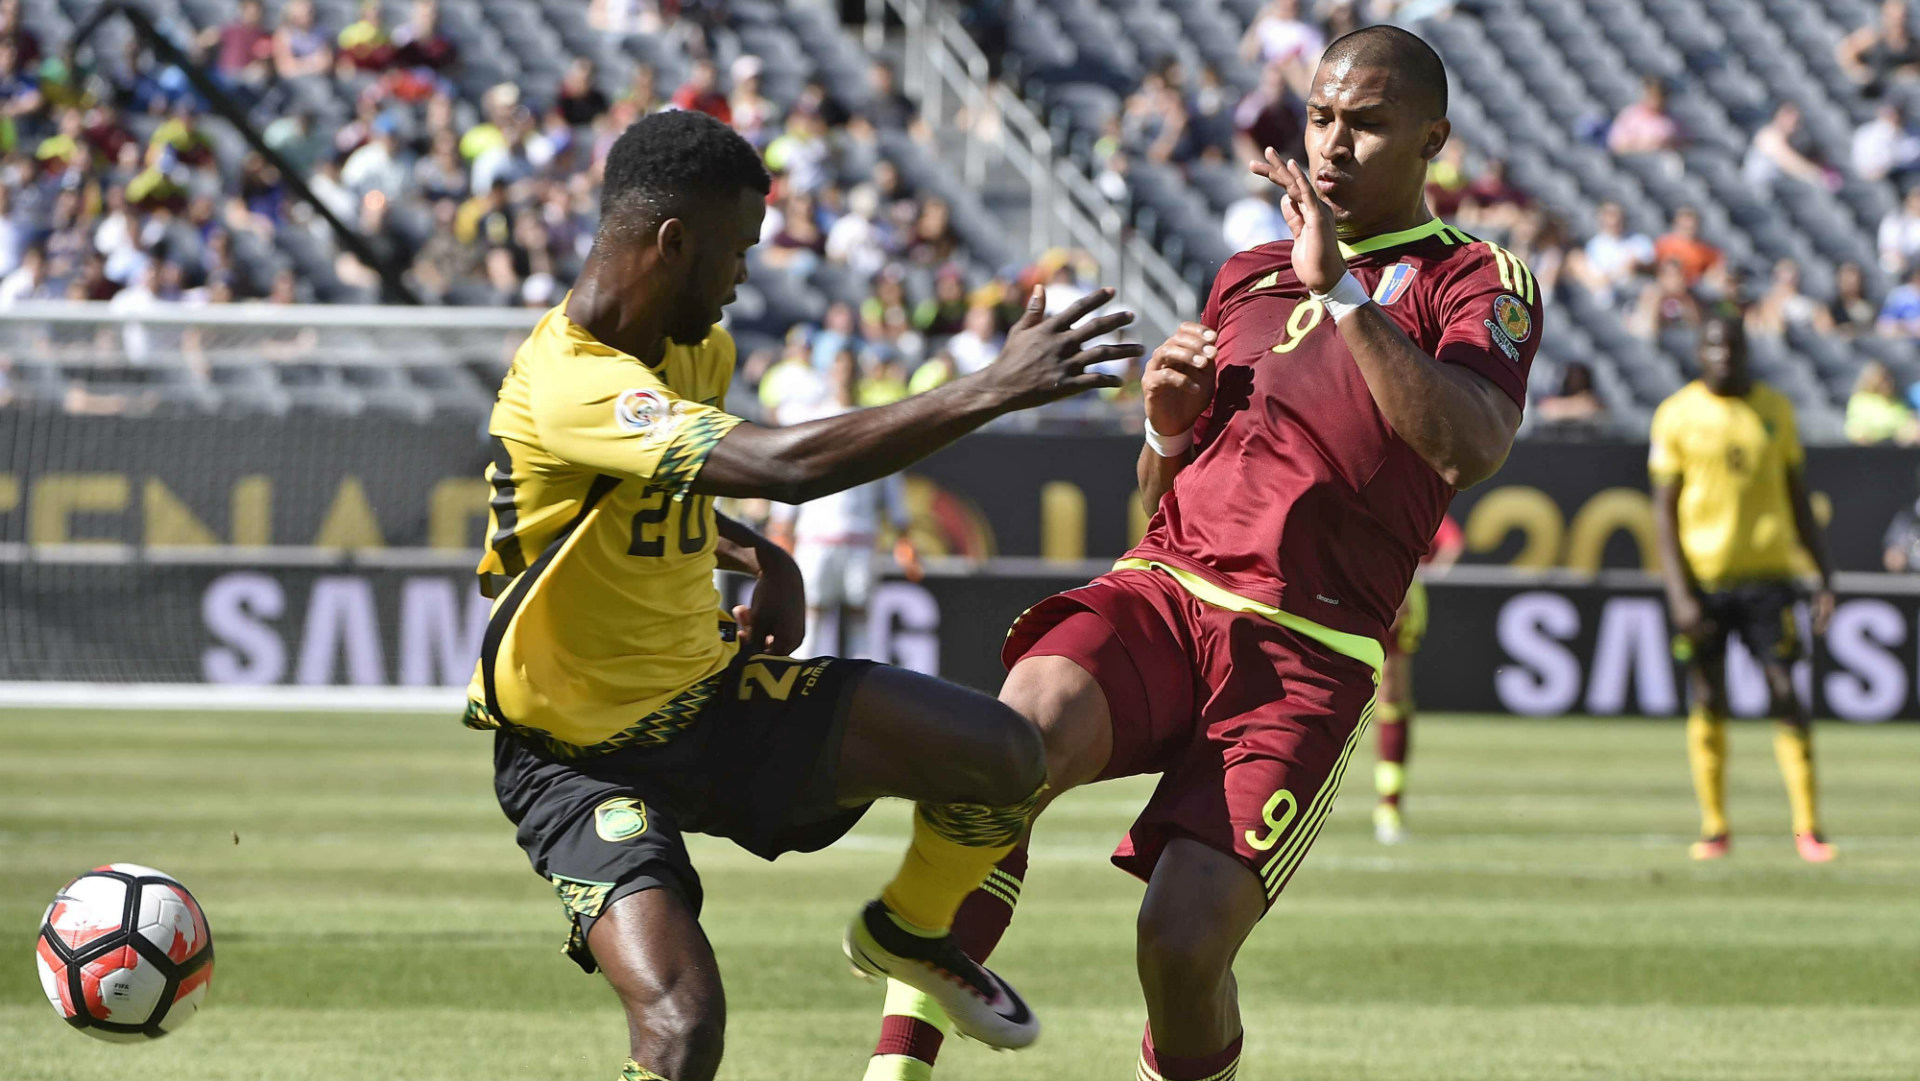 Kemar-lawrence-jamaica-copa-america-centenario_sus1z4is51rs1d7x4rs1457f4